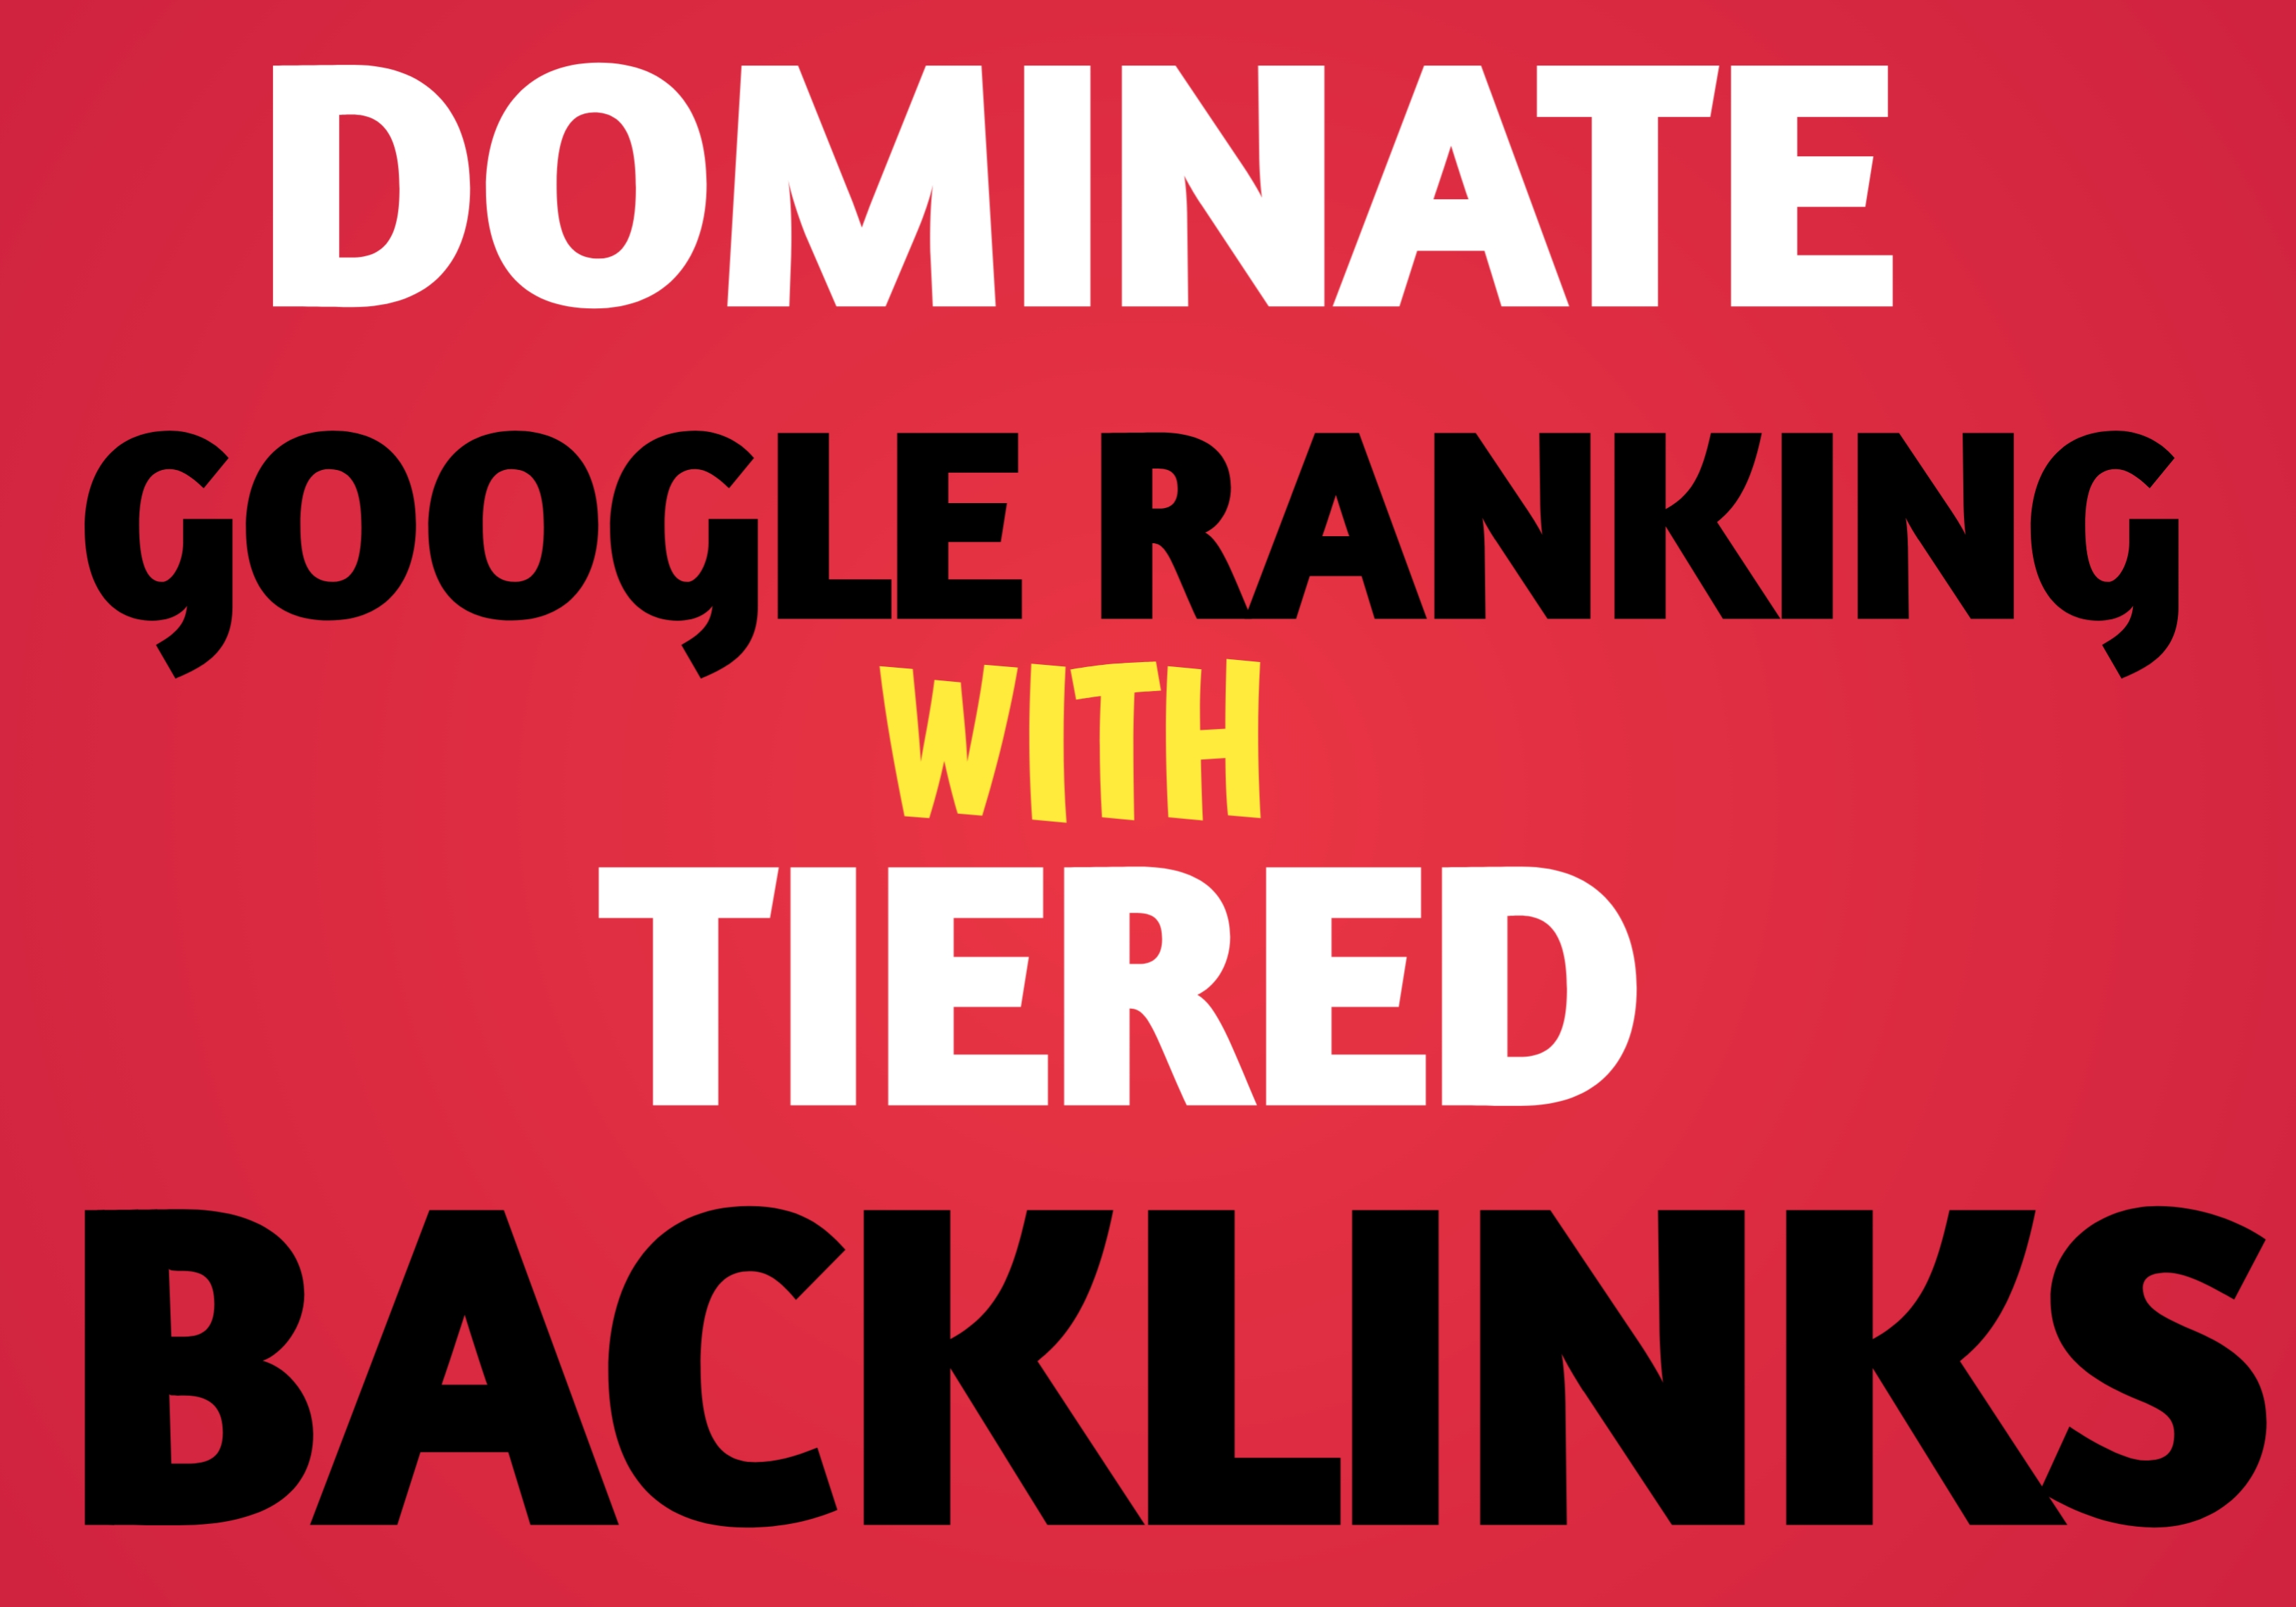 I will help dominate google ranking with tiered backlinks